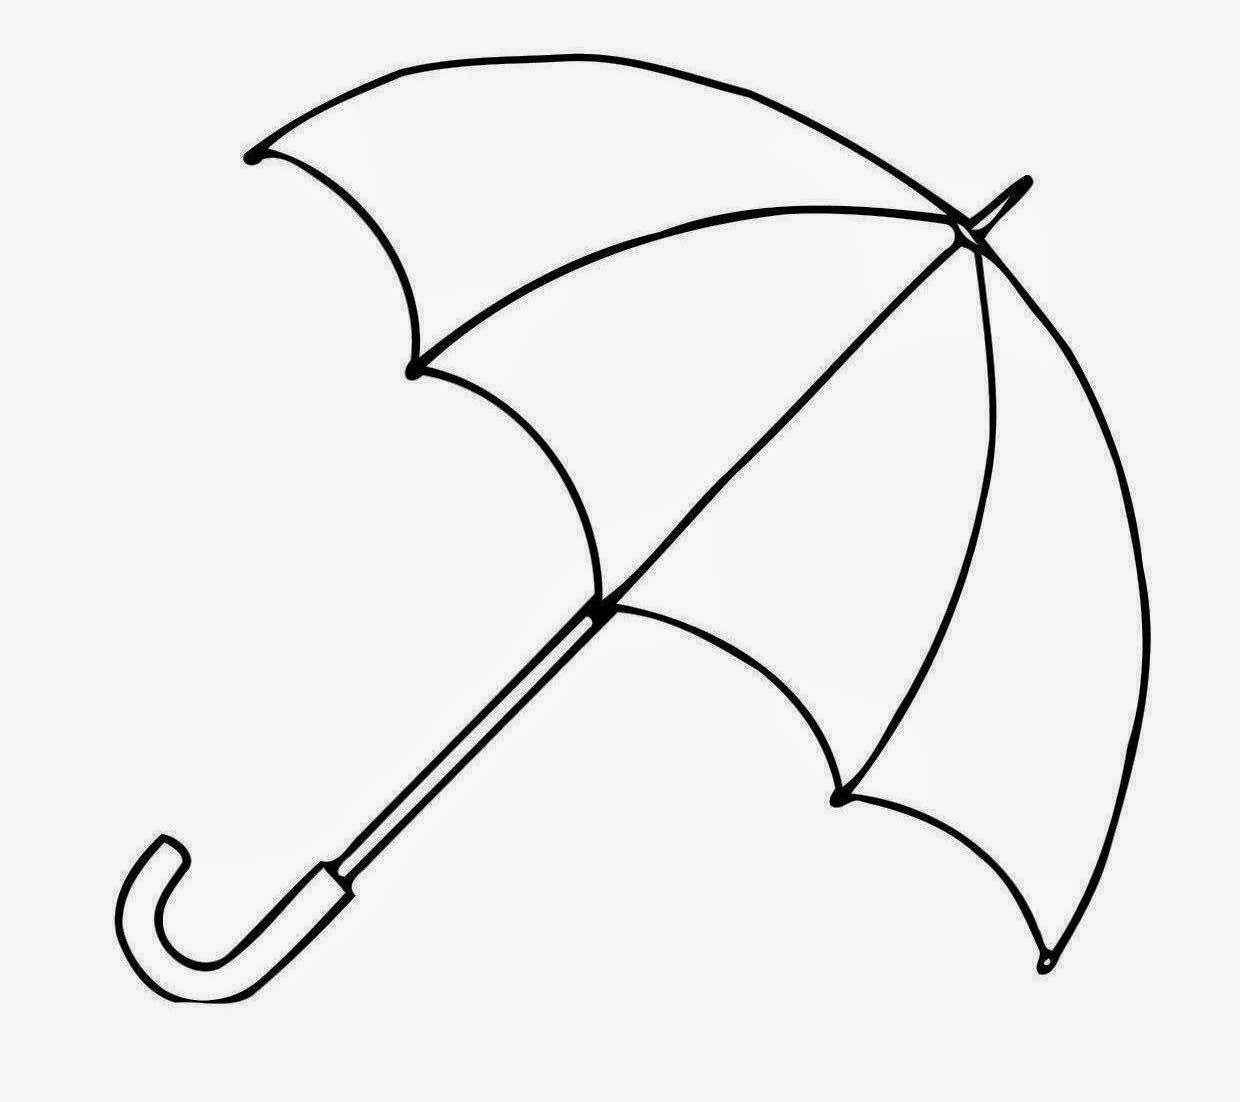 Umbrella clipart free clipart - Umbrella Clipart Black And White